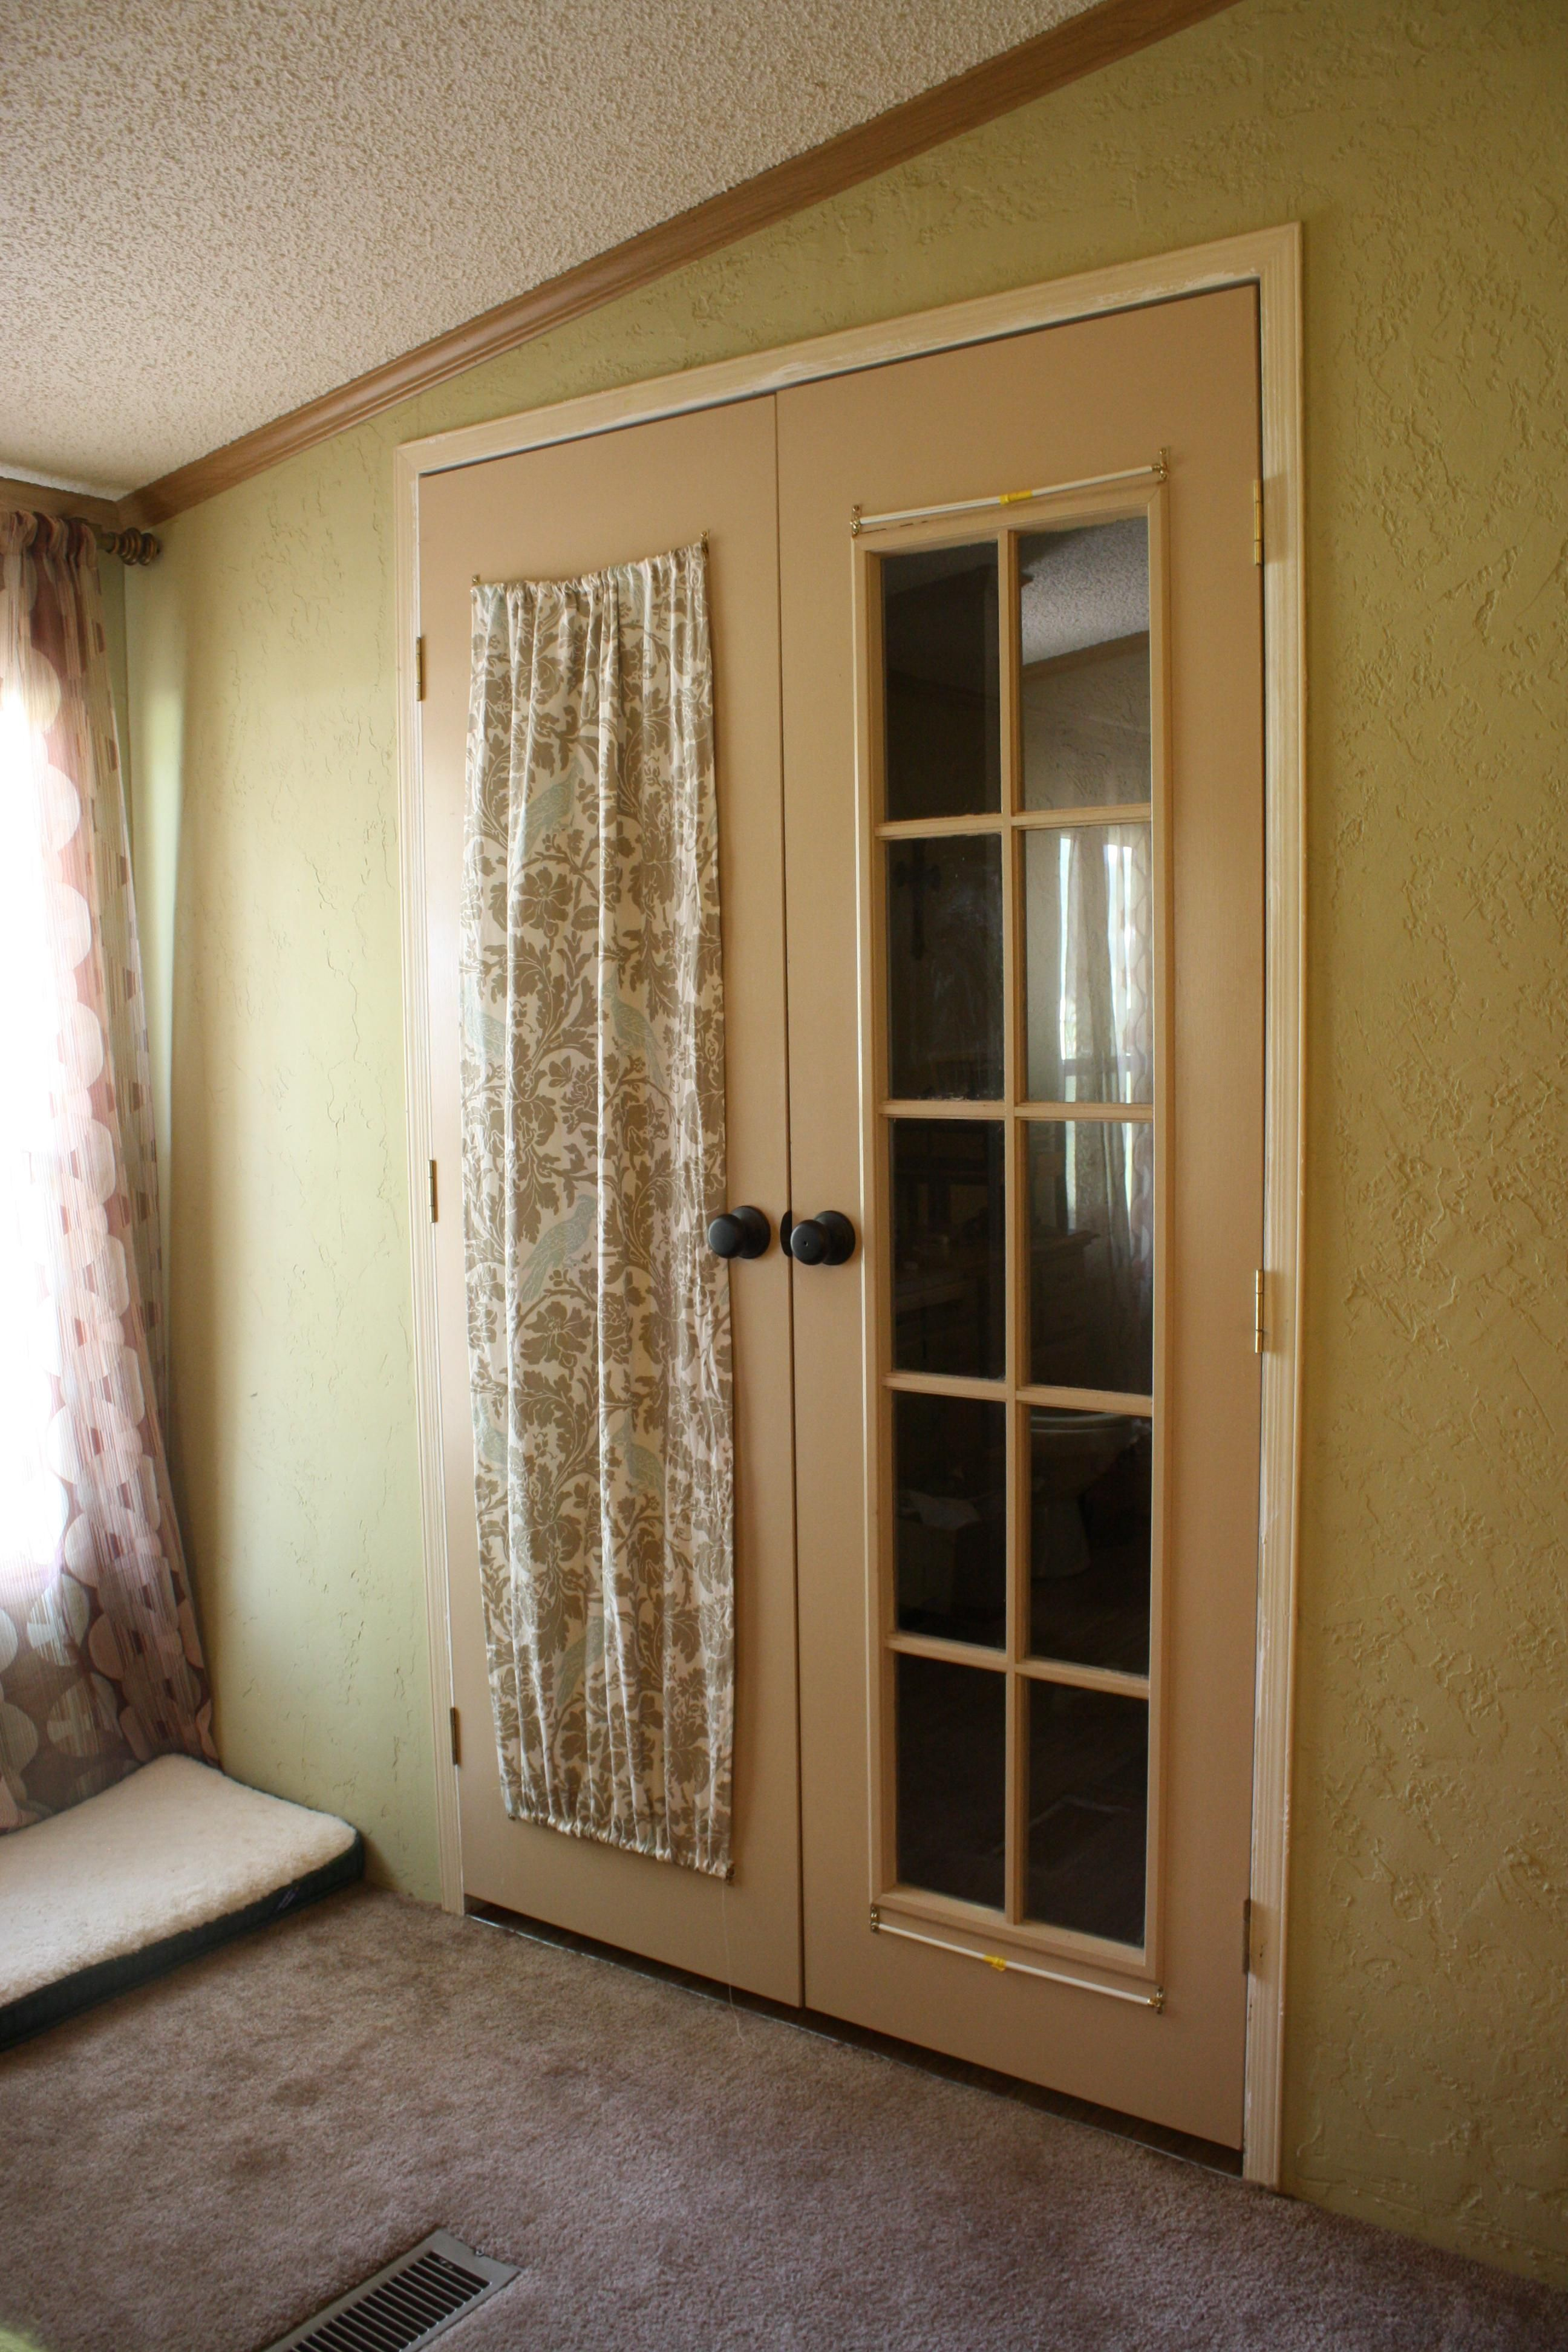 Interior doorway curtains - Diy French Door Curtains Diy Curtains Diy Home Diy Decor I Need These For Both Sets